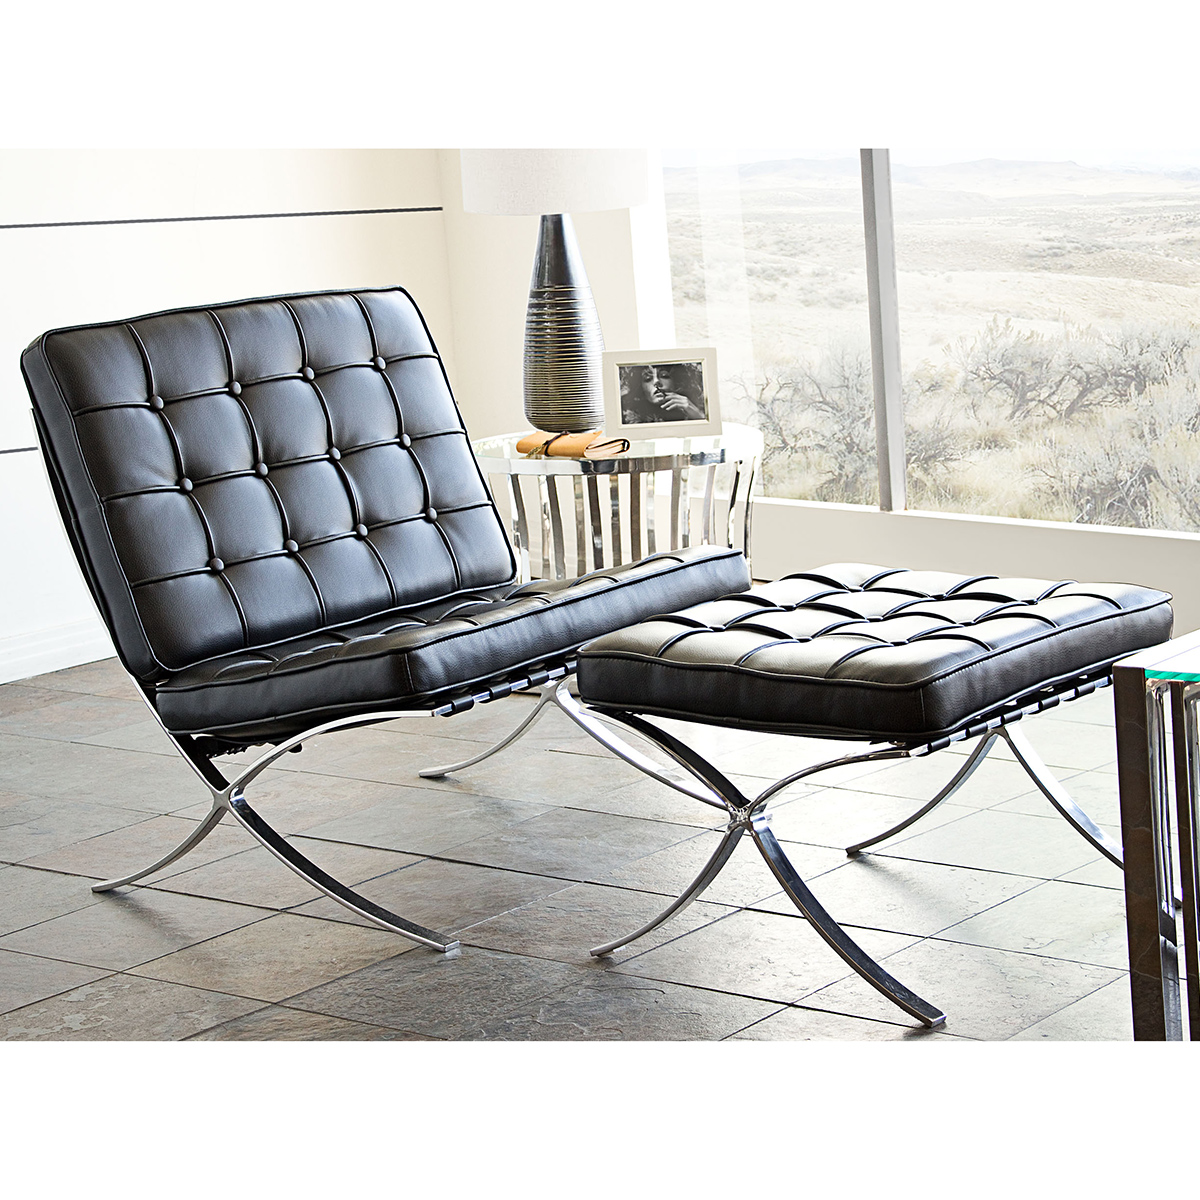 Cordoba Tufted Chair Ottoman Set W Stainless Steel Frame In Black Leather By Diamond Sofa